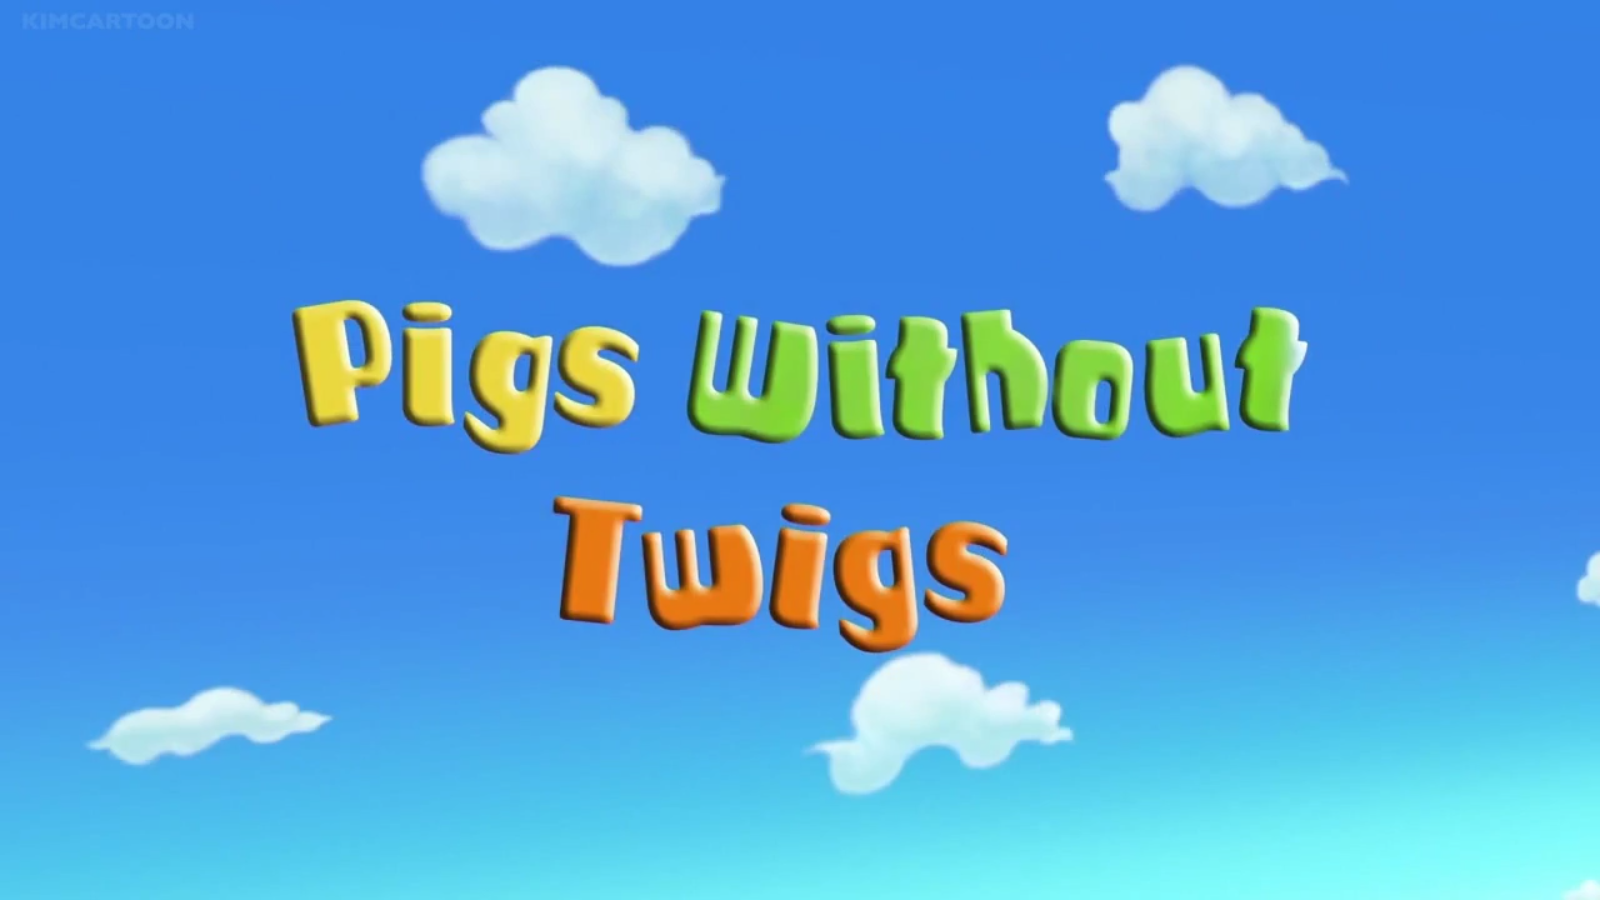 Pigs Without Twigs